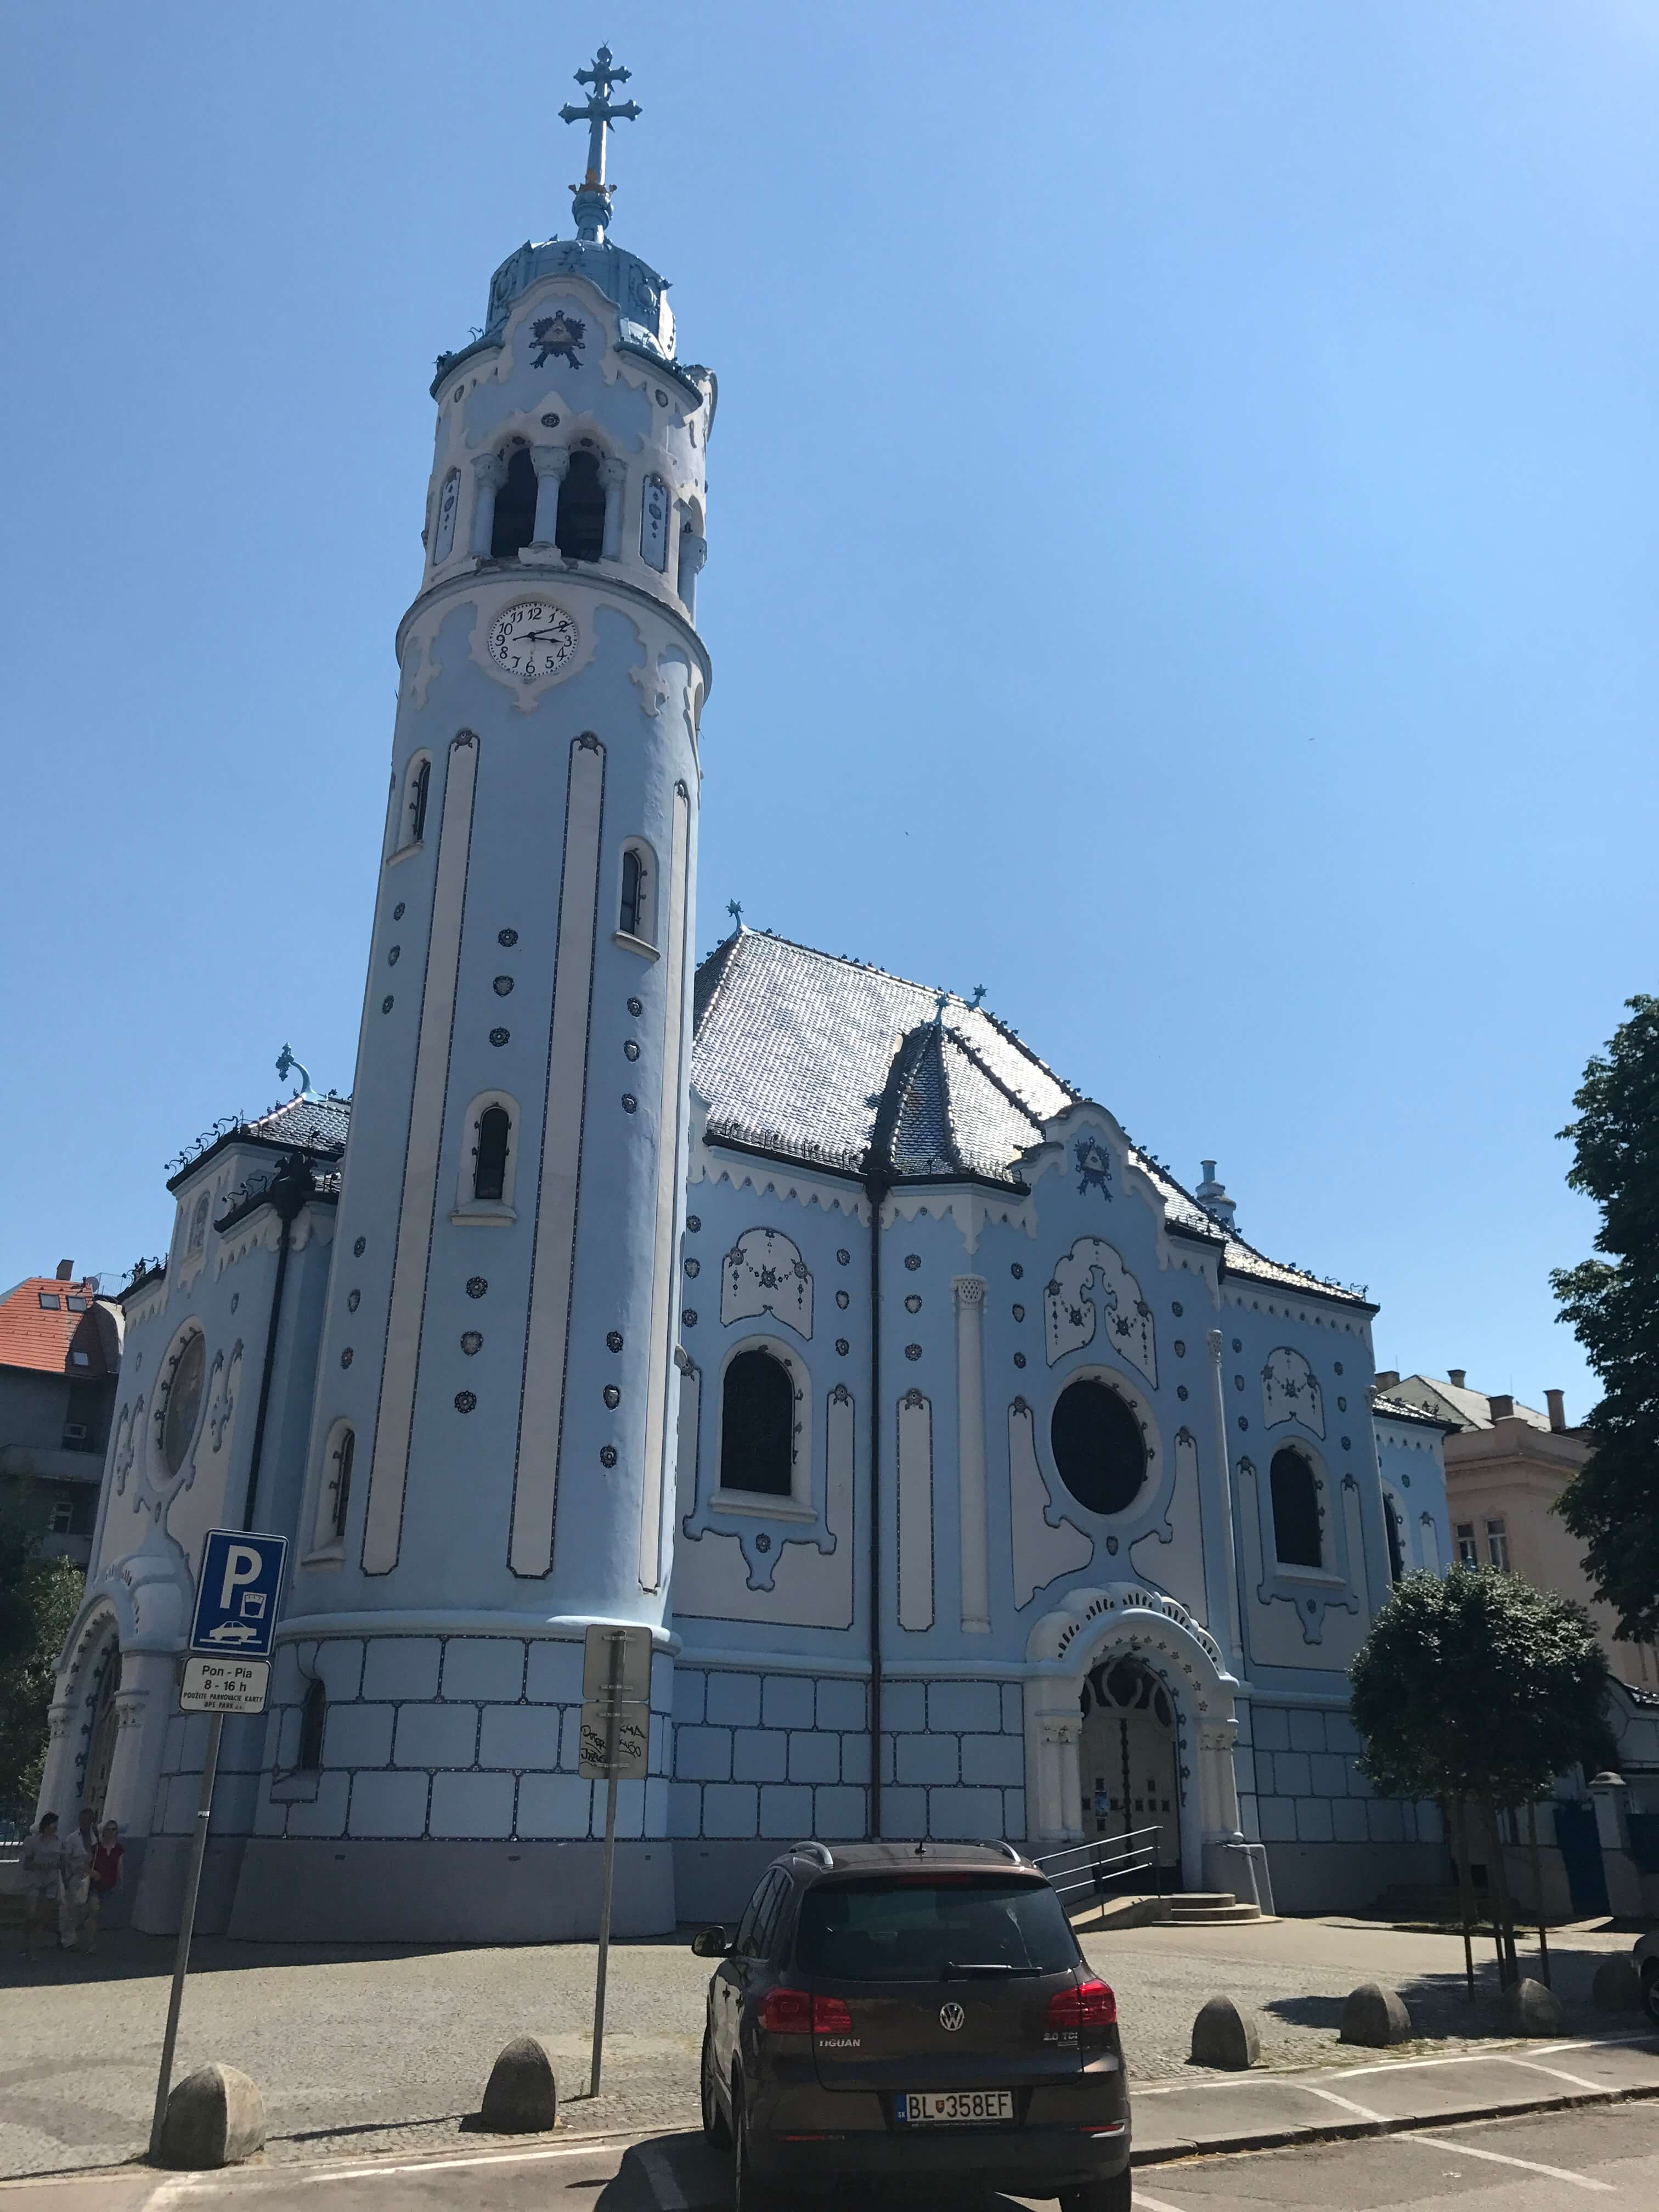 The Church of St. Elisabeth is unique and painted blue.